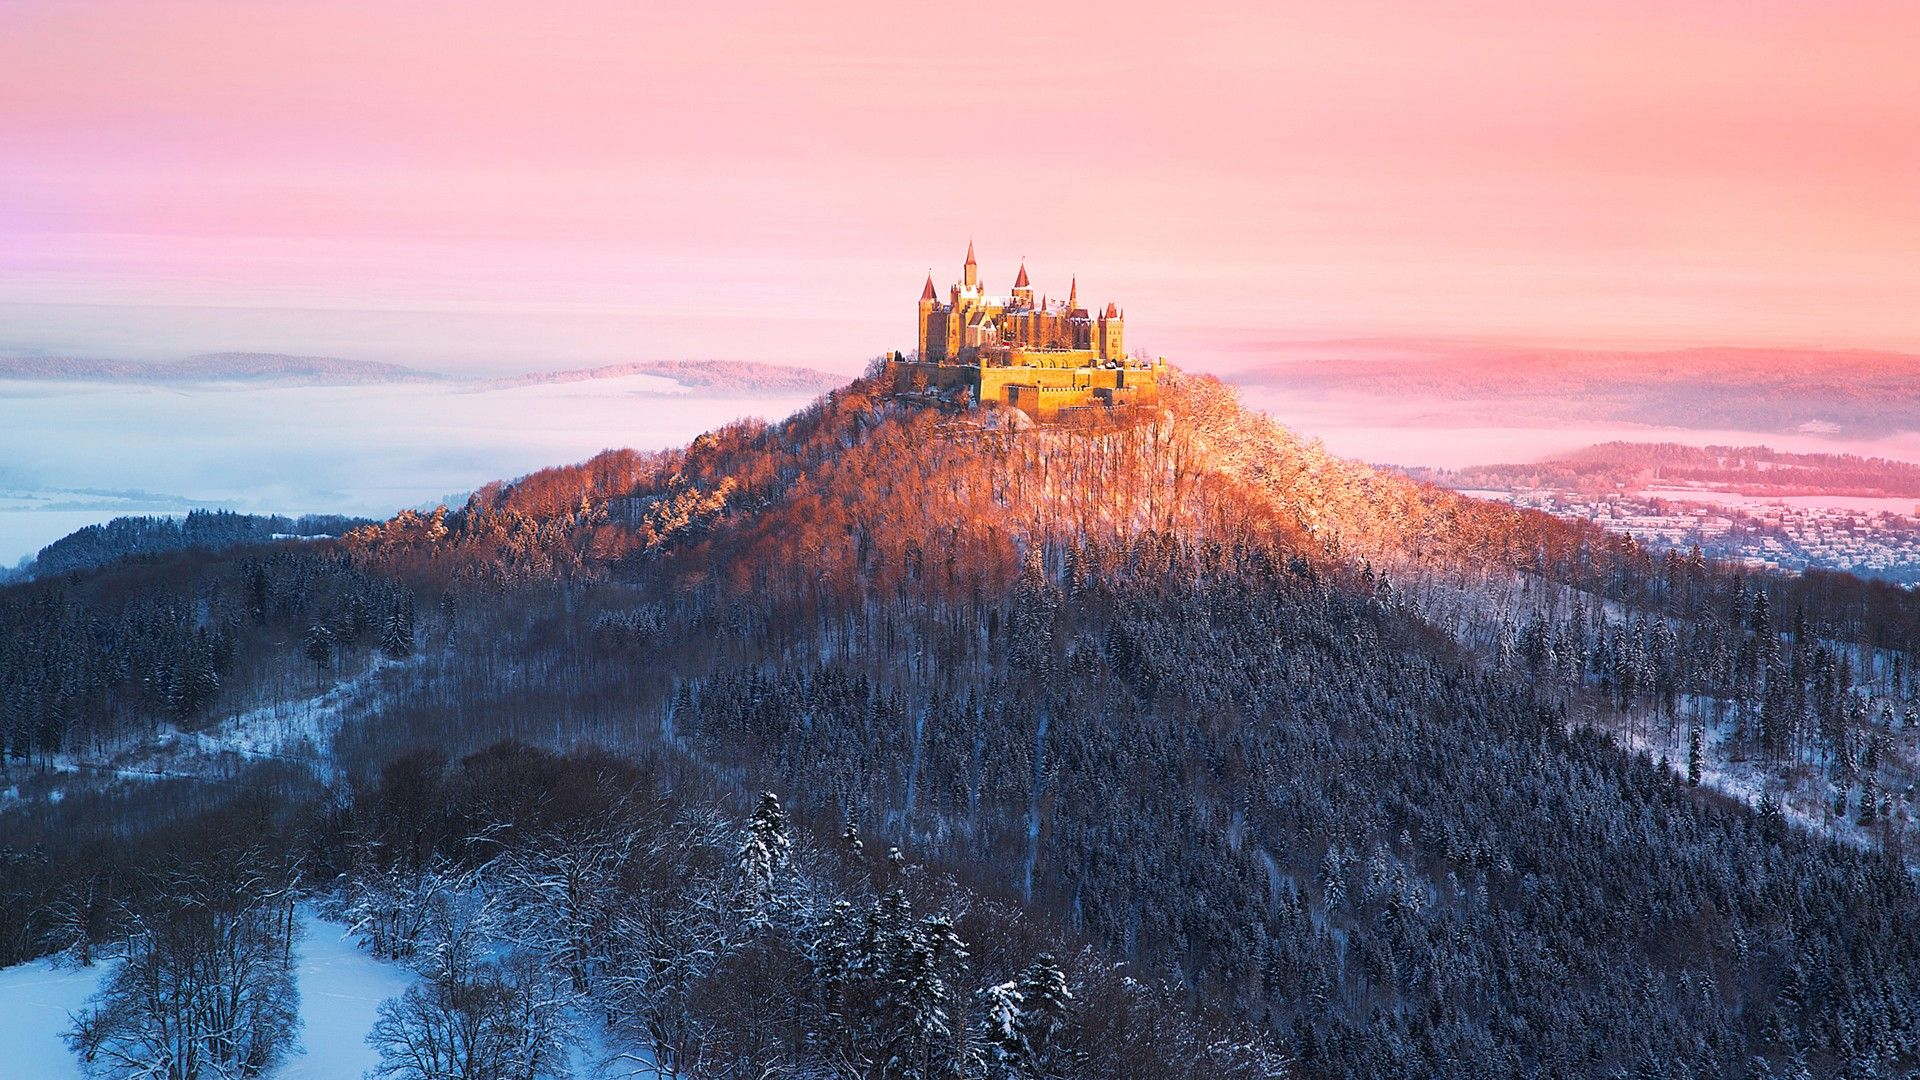 Download Hd Wallpapers Of 371681 Nature Forest Mountains Burg Hohenzollern Hohenzollern Baden Wurttemberg Germ Hohenzollern Castle Castle Germany Castles